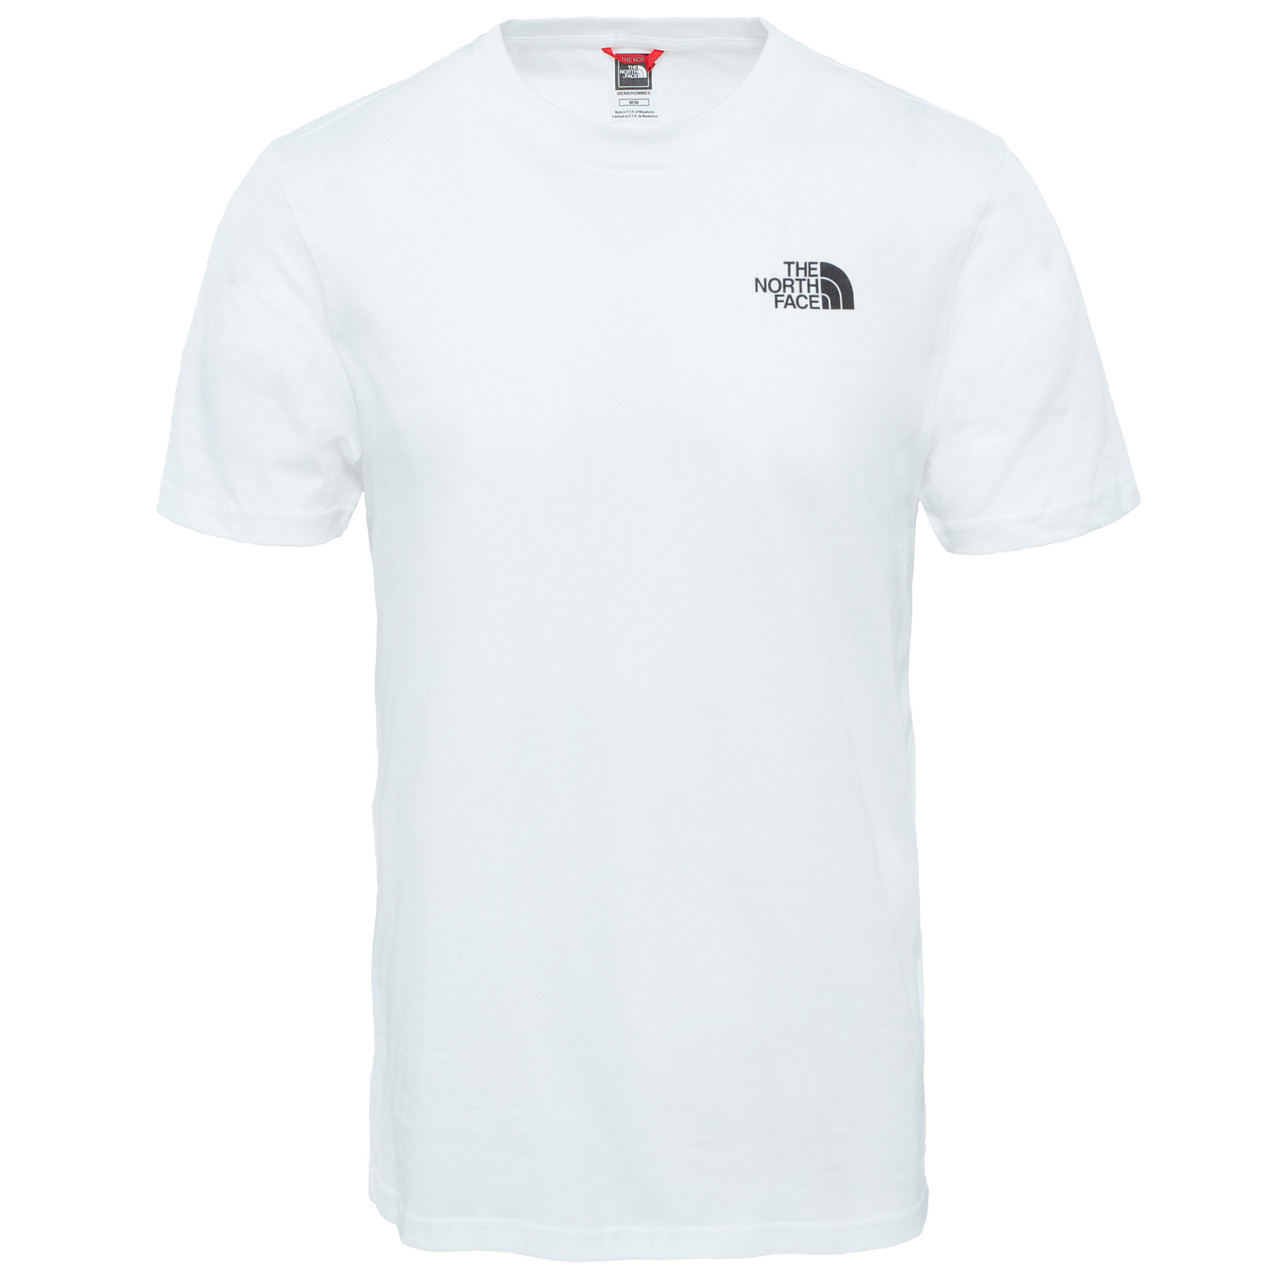 The North Face S/S Simple Dome Tee Men's @ https://www.mountainmailorder.co.za/